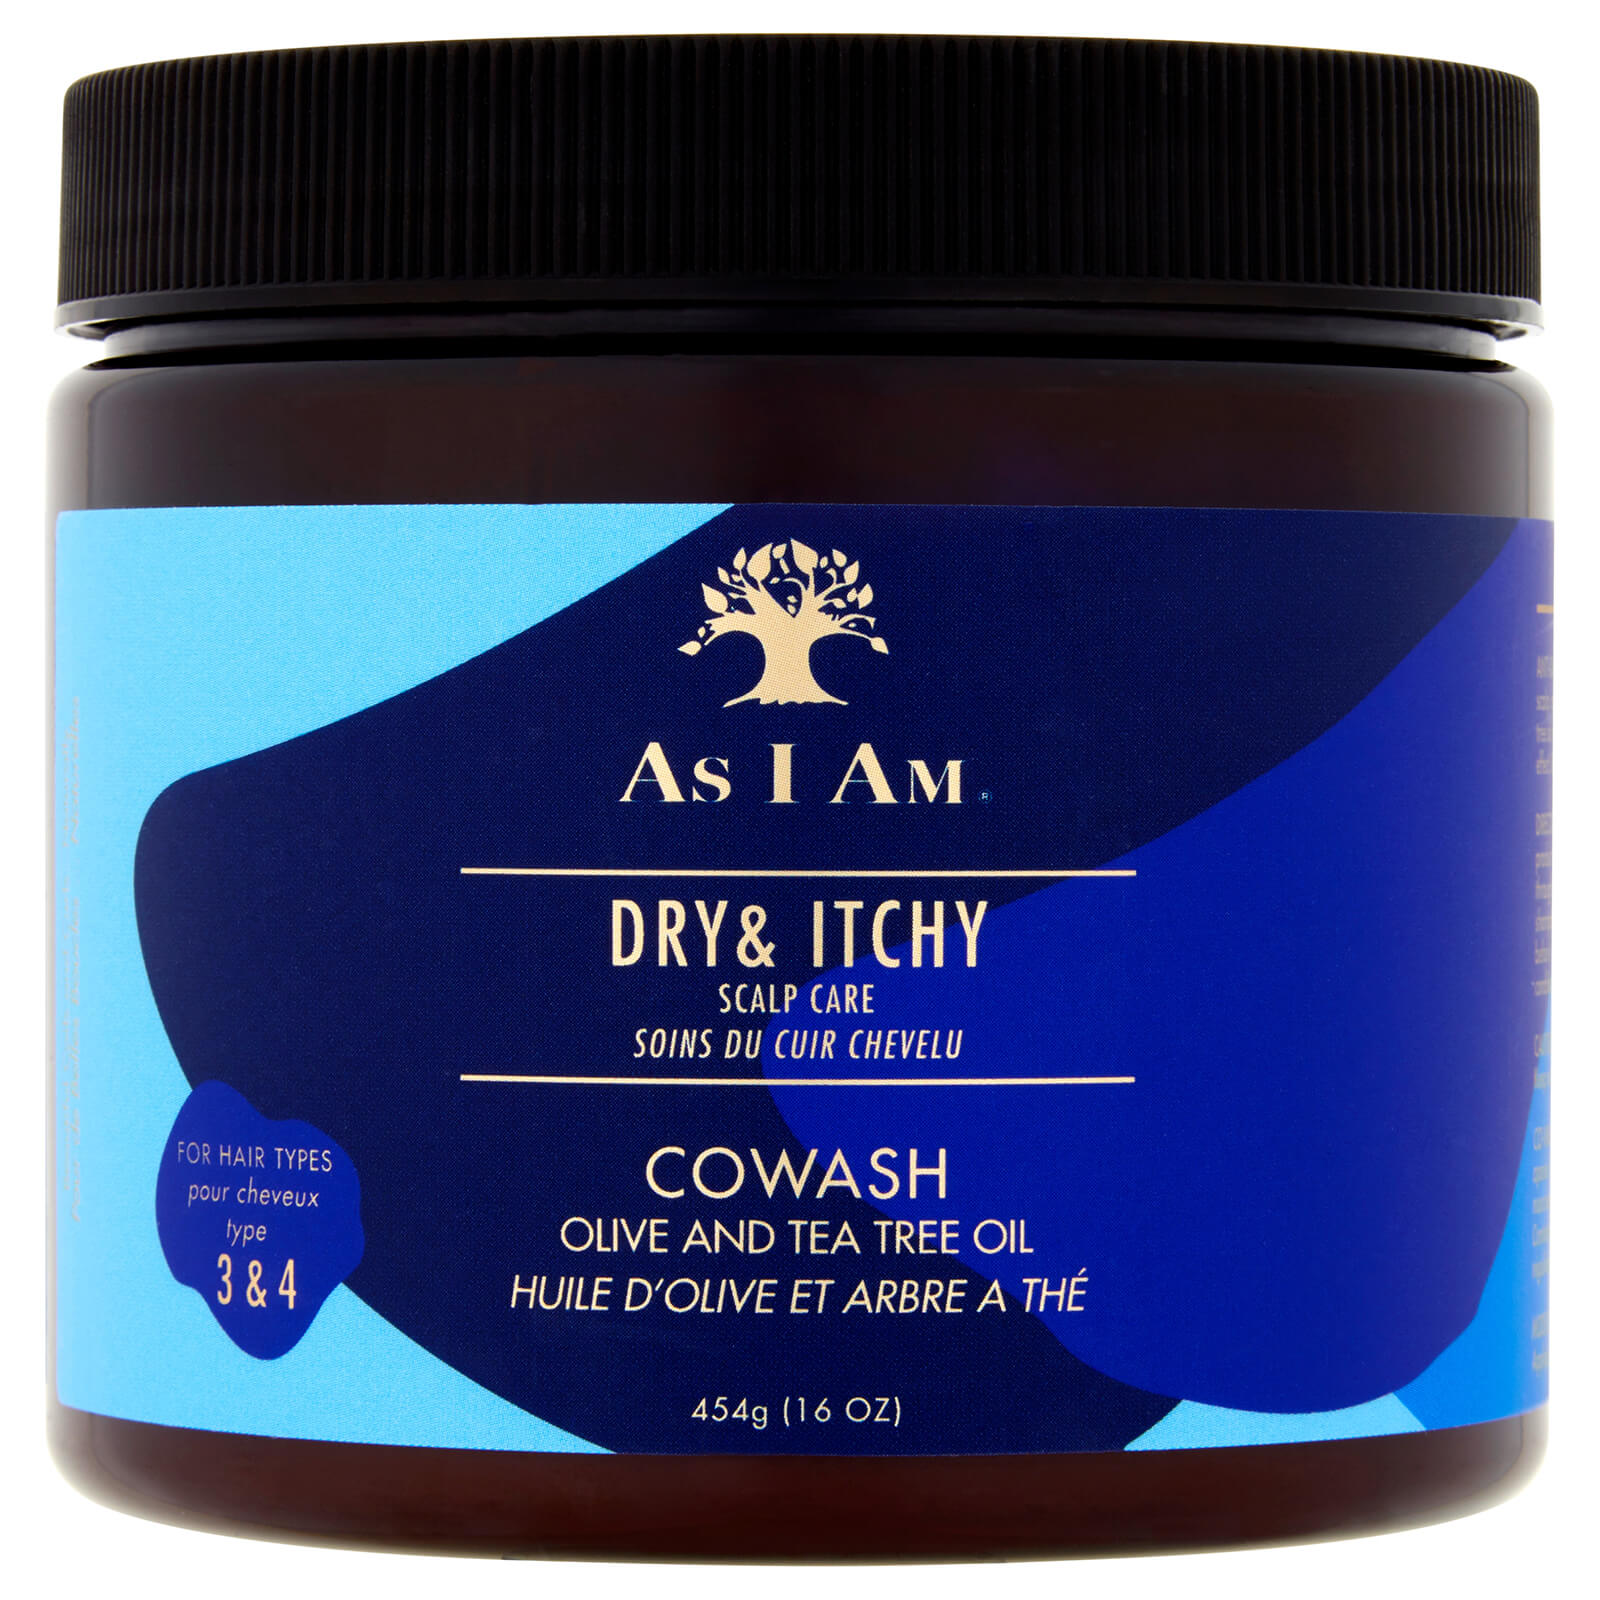 As I Am Dry and Itchy Scalp Care Olive and Tea Tree Oil Co-Wash 454g